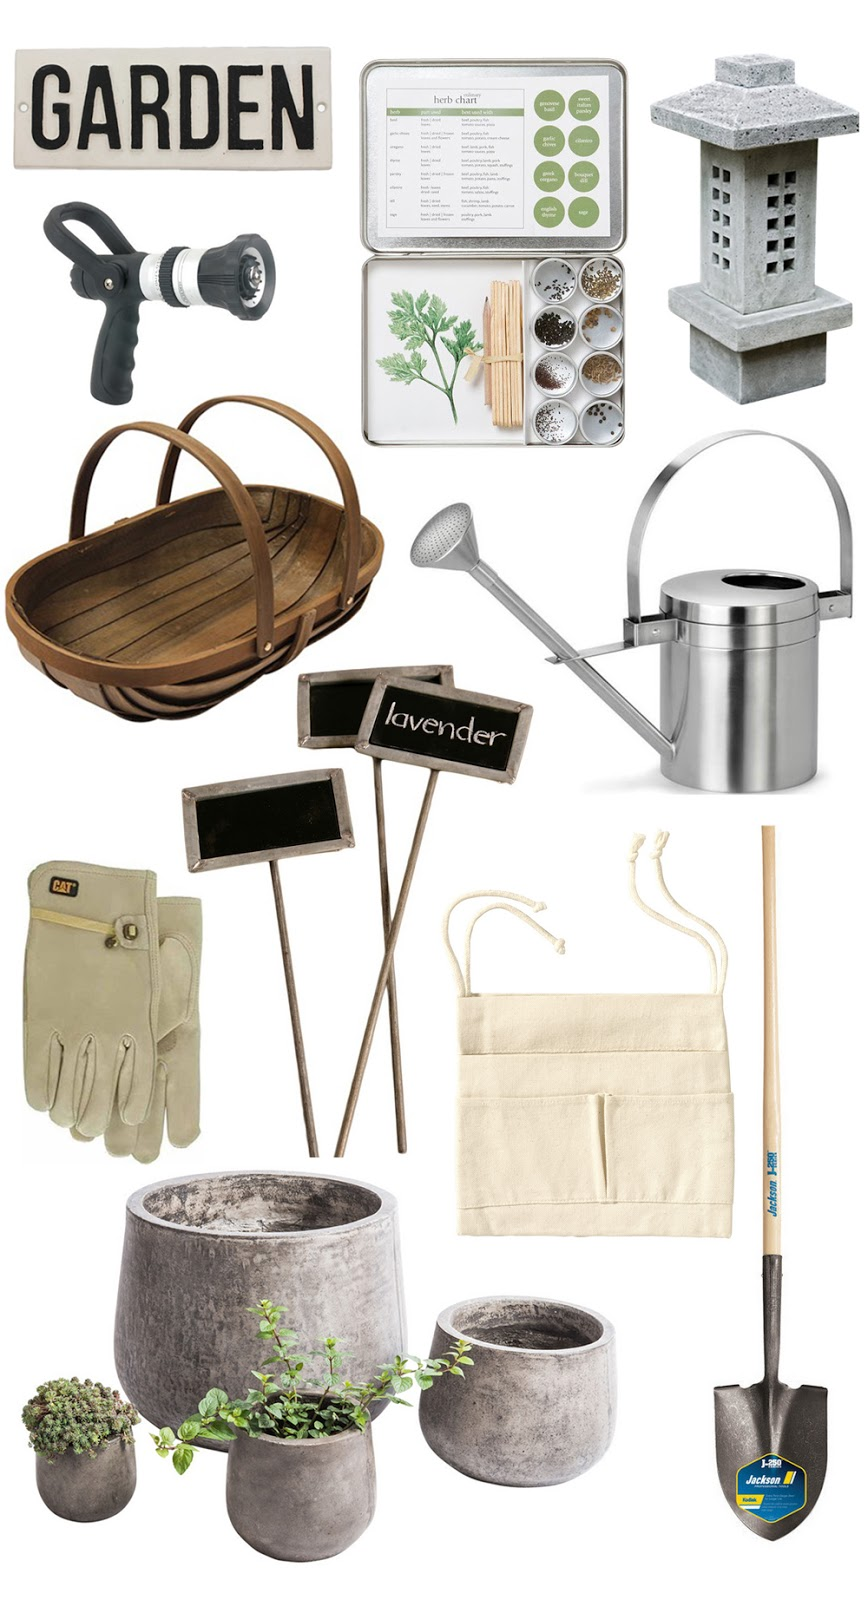 Springtime Gardening Tools and Must-Haves